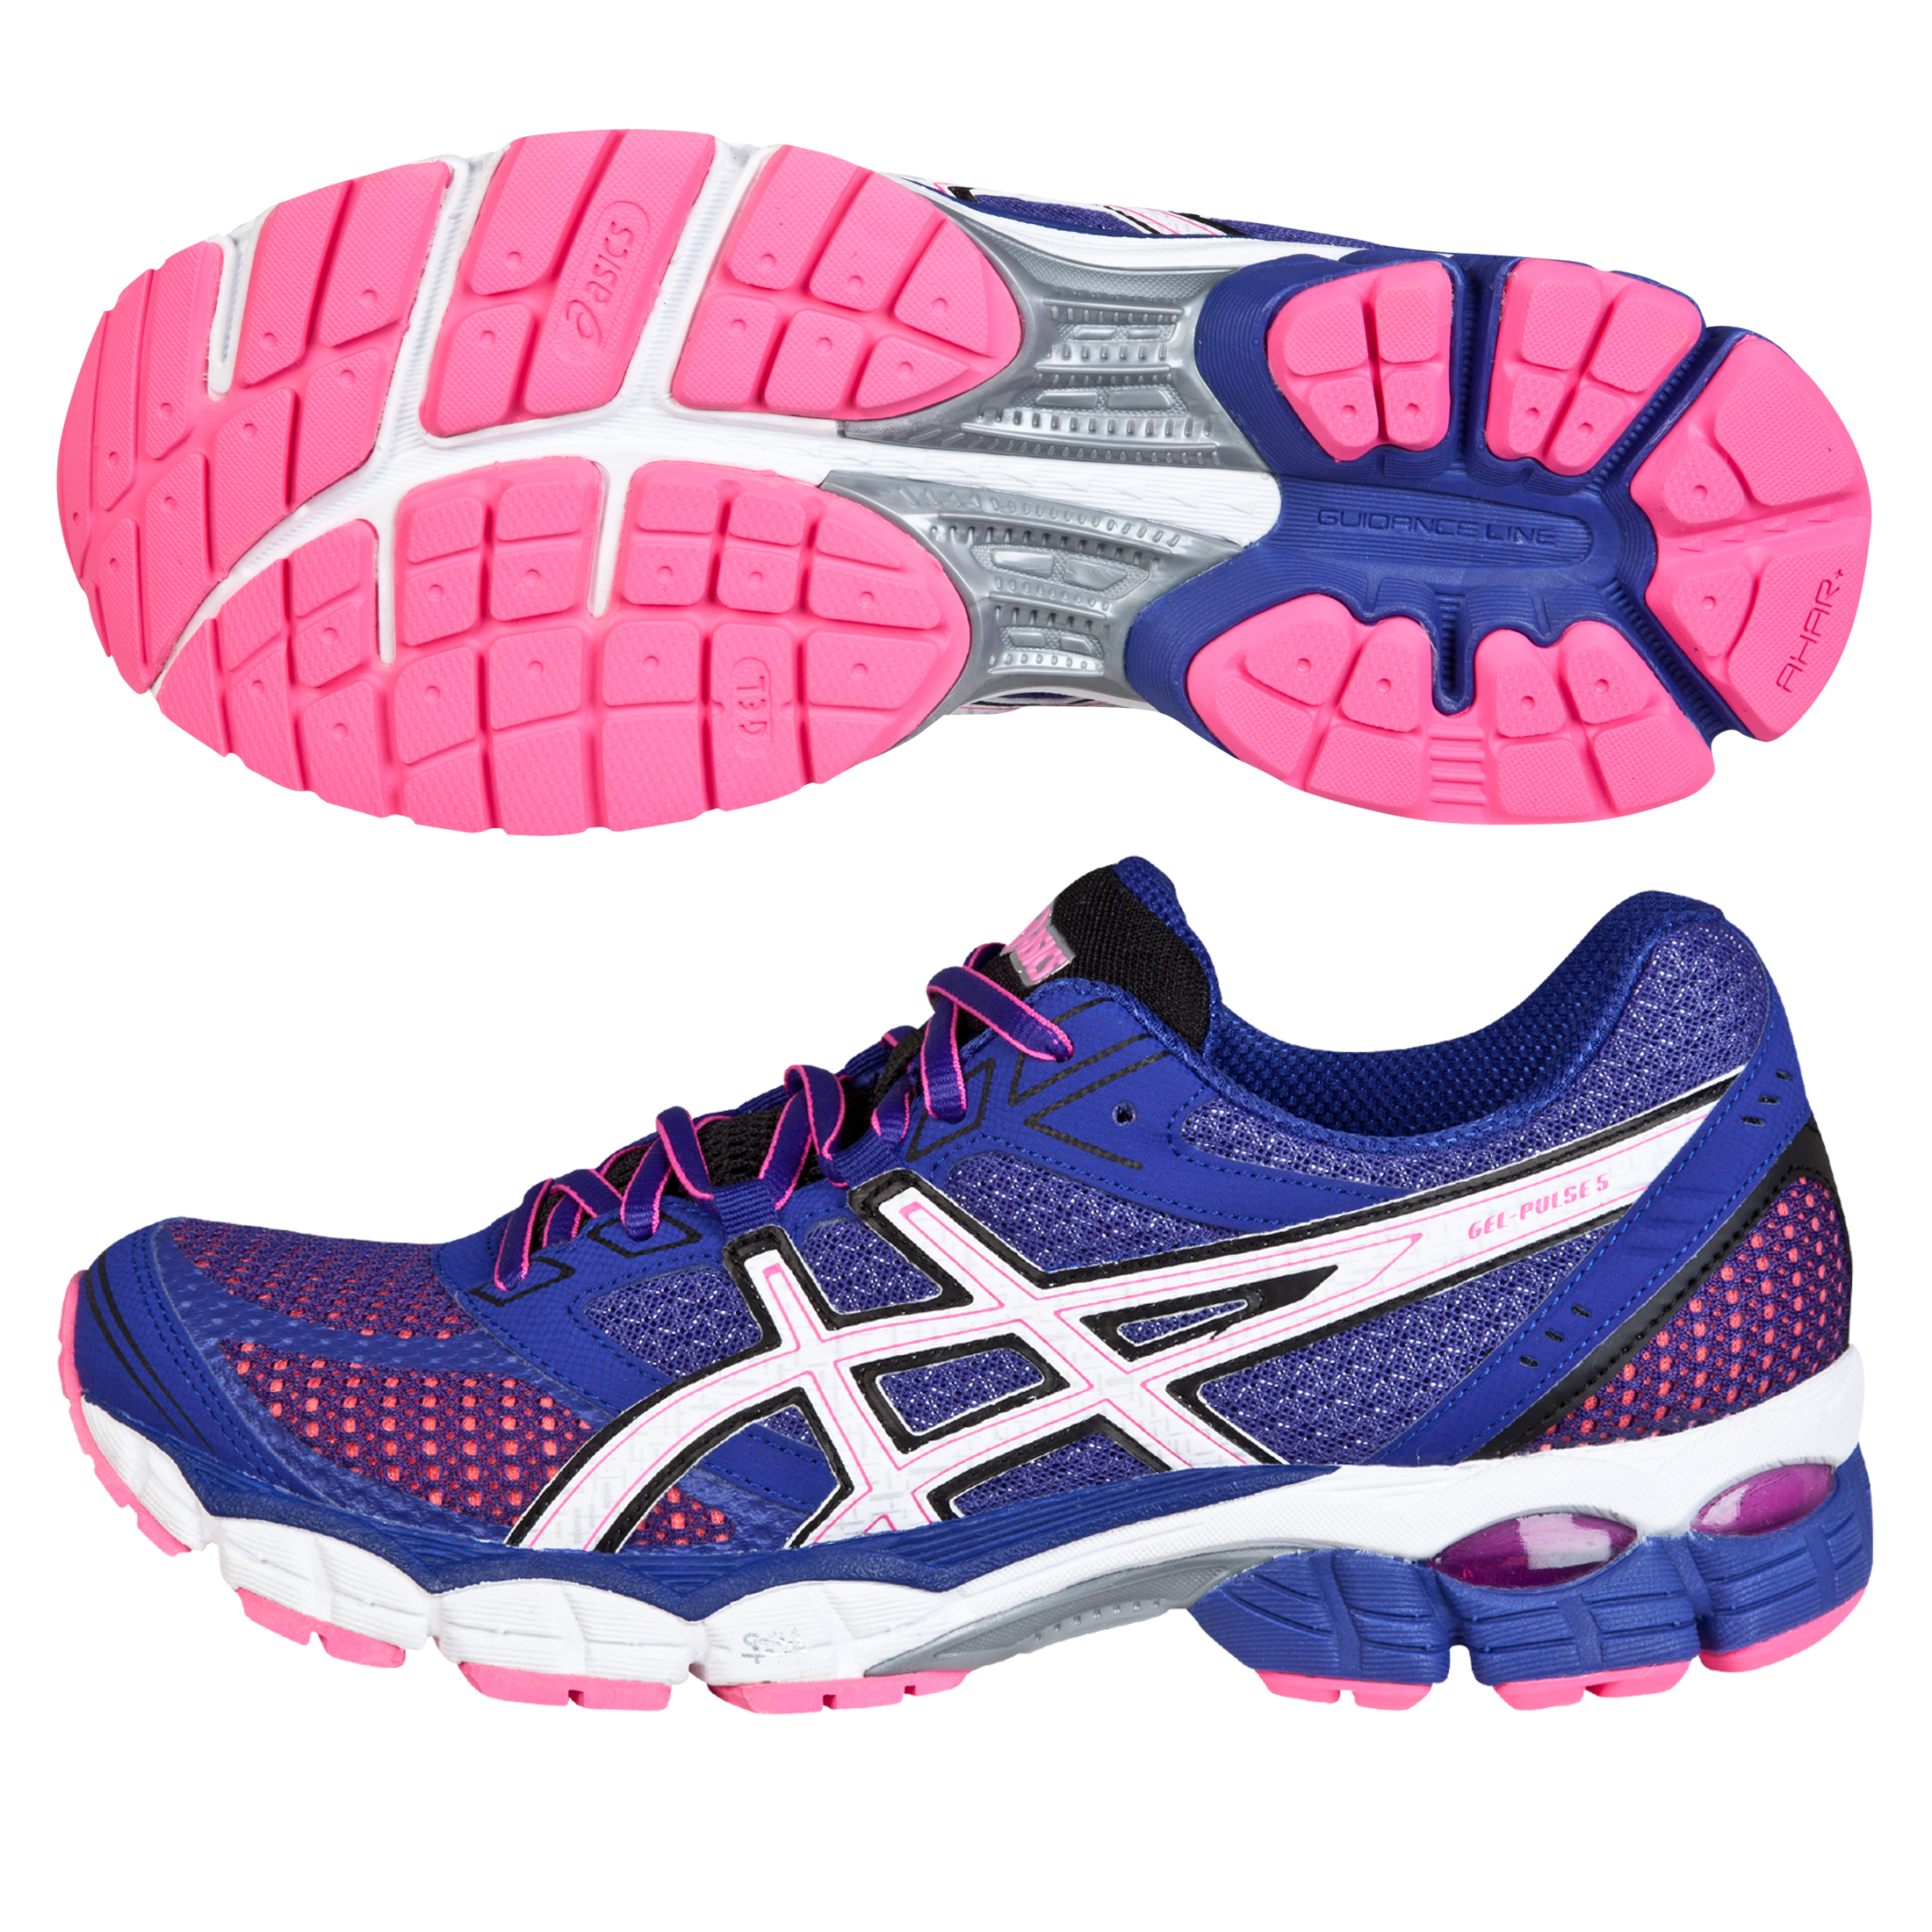 Asics Gel Pulse 5 Trainers - Womens Blue